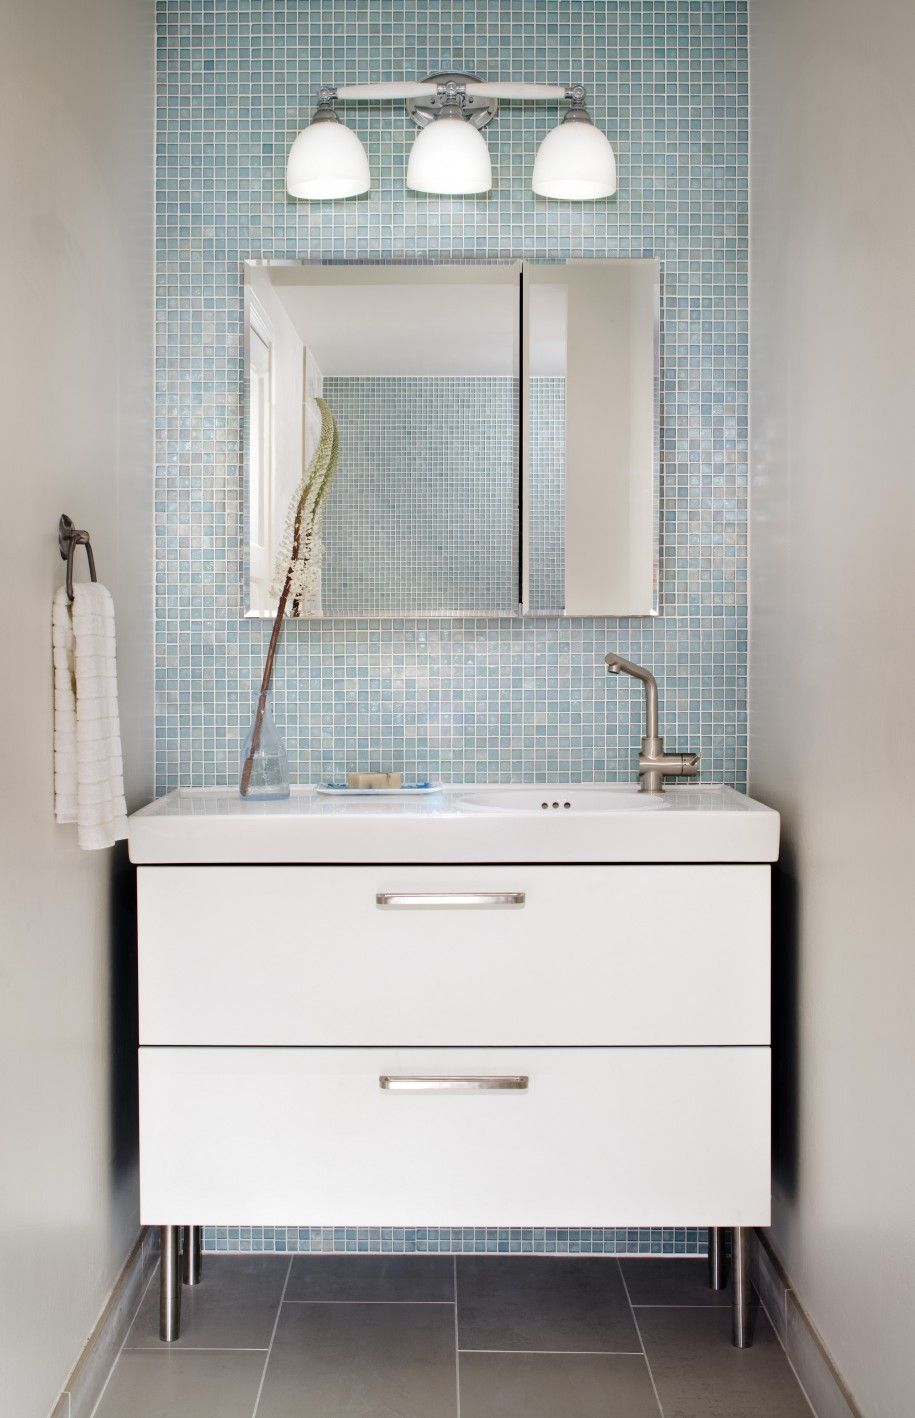 Bathroom Wonderful Small Bathroom Decoration With Light Blue Glass Tile Bathroom Ideas For The